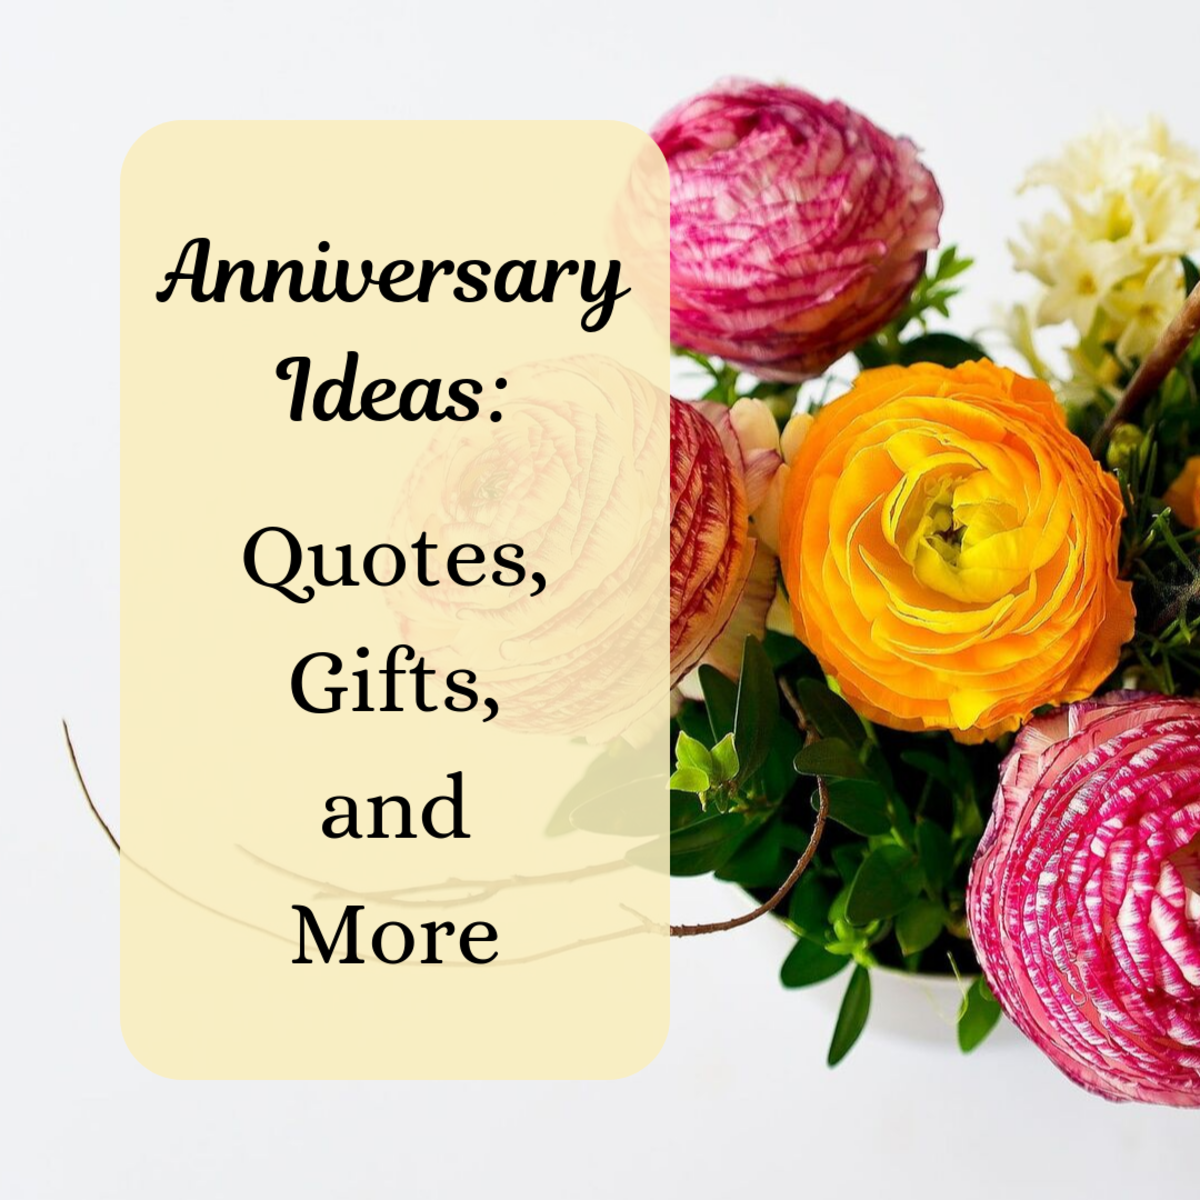 Whether you have some time to plan or you're searching for anniversary ideas at the last minute, find some suggestions for celebrating your love!